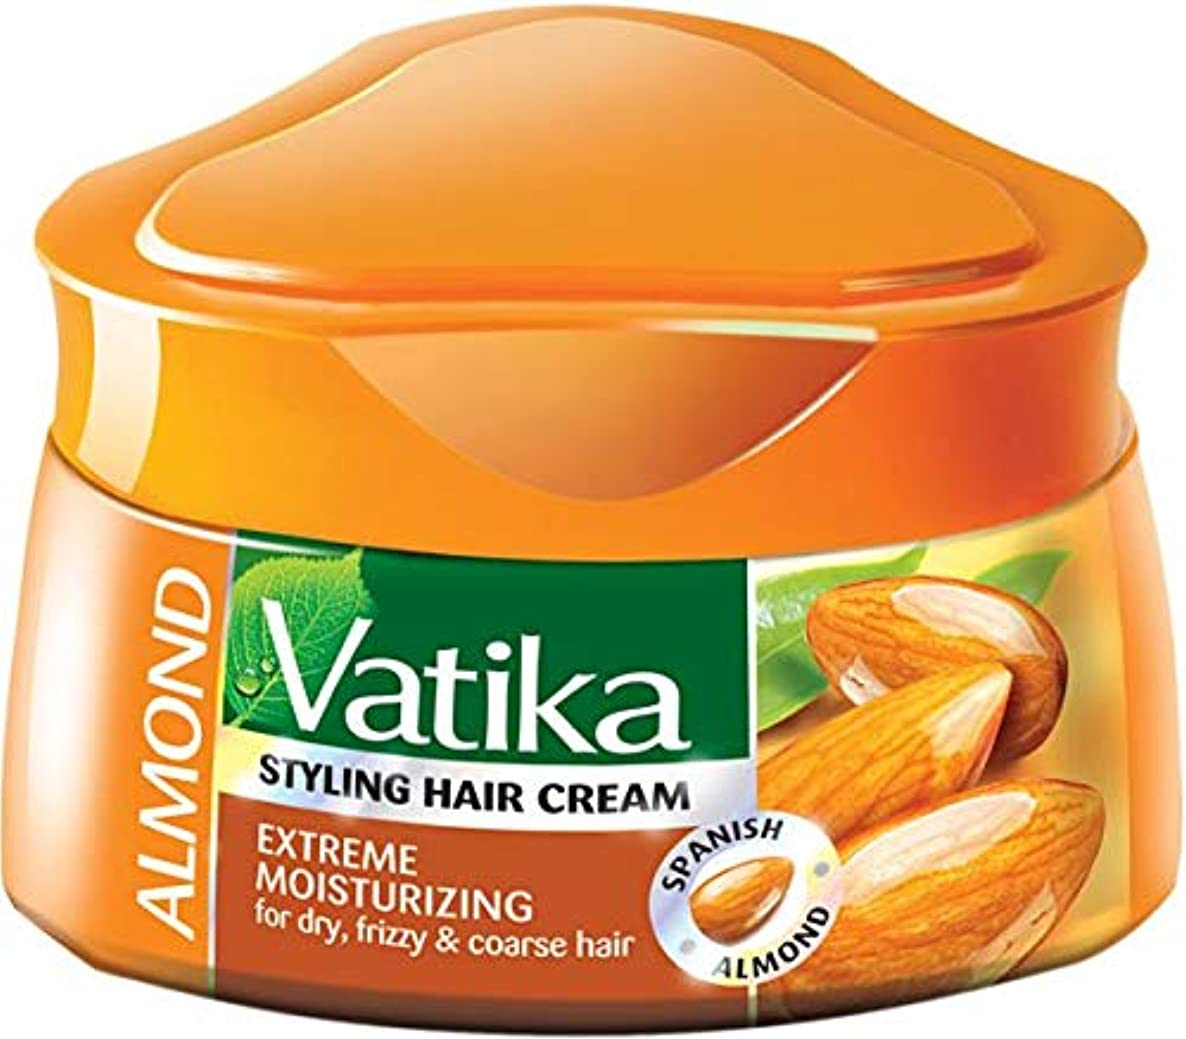 嫌がる常識貪欲Dabur Vatika Natural Styling Hair Cream 140 ml (Extreme Moisturizing (Almond))